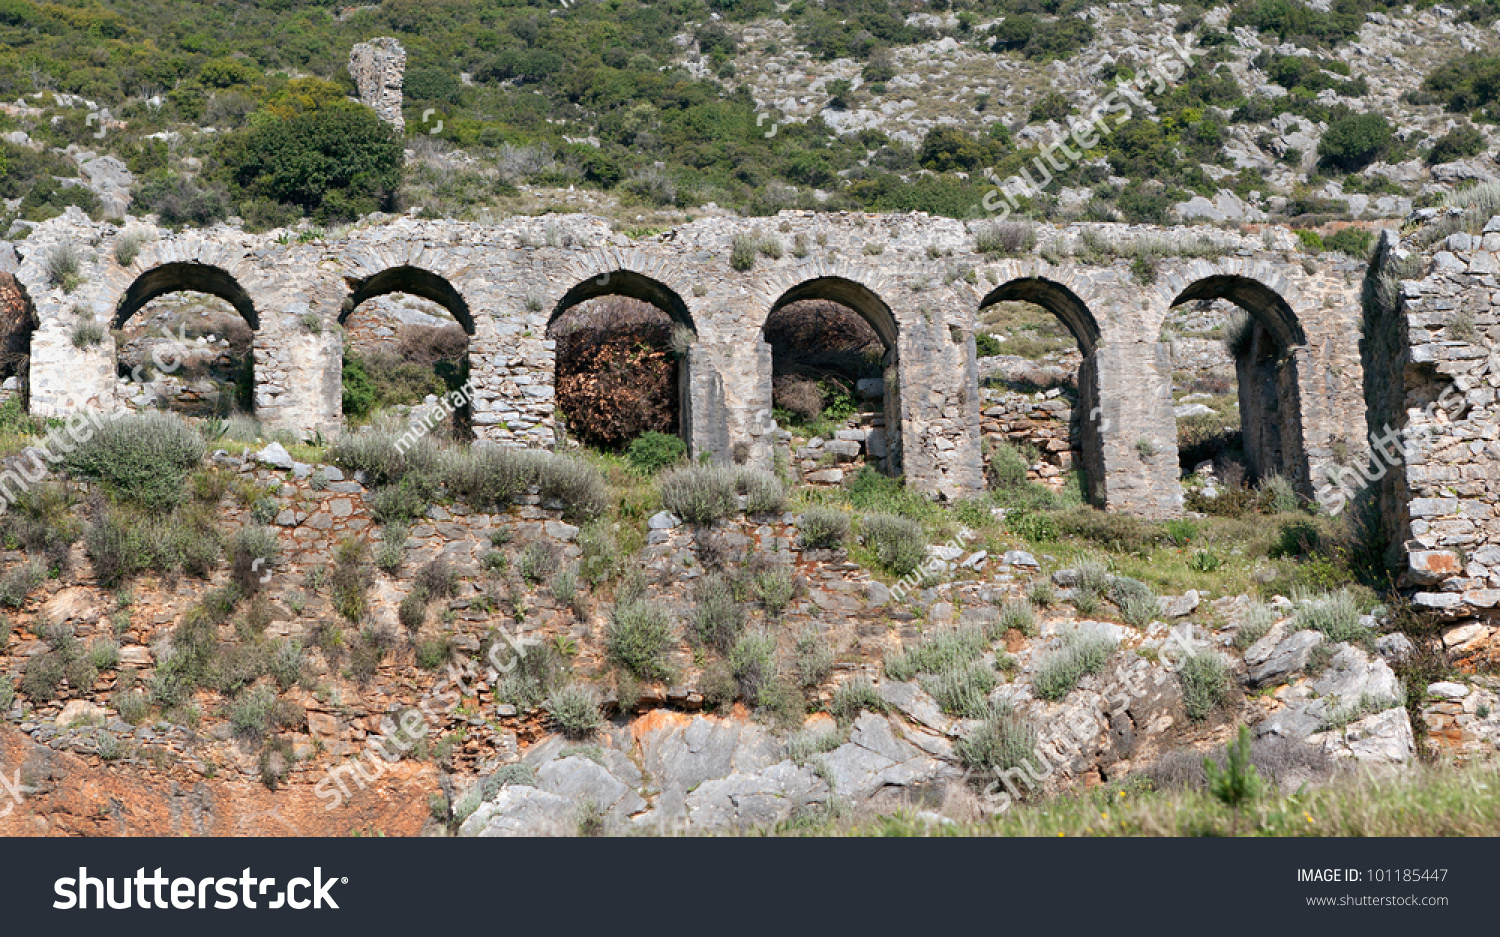 roman aqueducts essay Romans prefer calcareous aqueduct water because it origins from so-called karst-mountains explain why what were the differences and similarities between the ancient aqueducts and the modern water supply (sources, transport, use of water towers, distribution within the town, measuring the water usage, accountability, type of users, public heath).